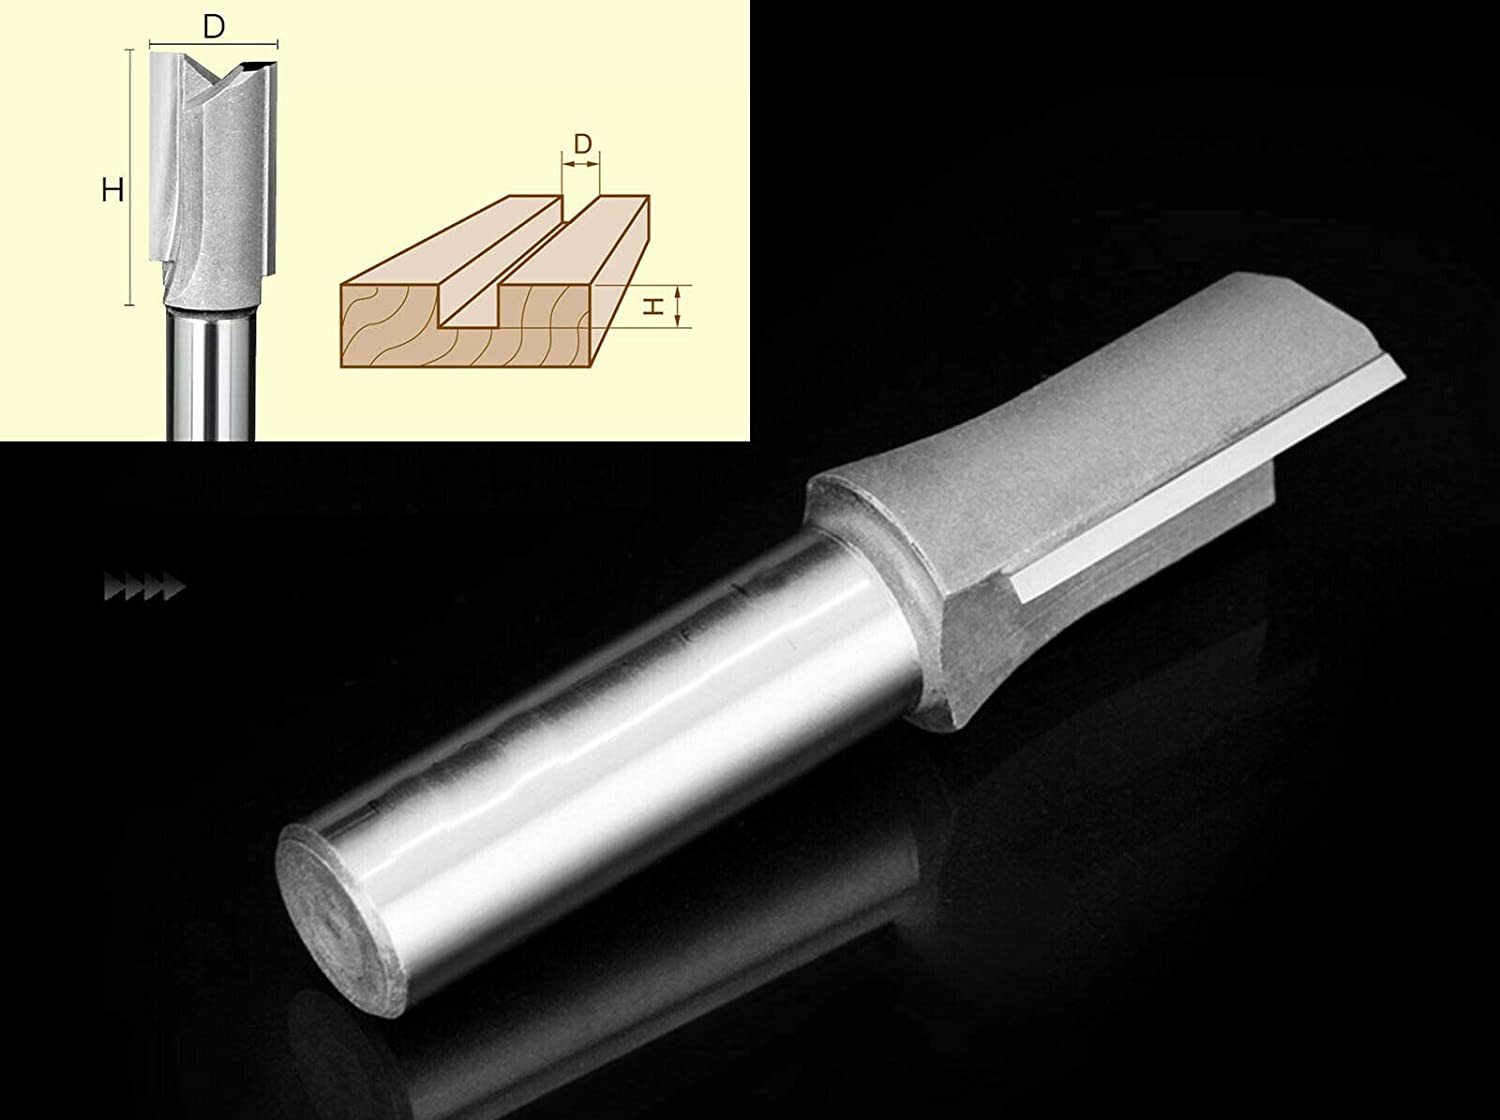 Extra Long 1/2 x 1/2 x 1 1/2 Double Flute Straight Router Bit Tool